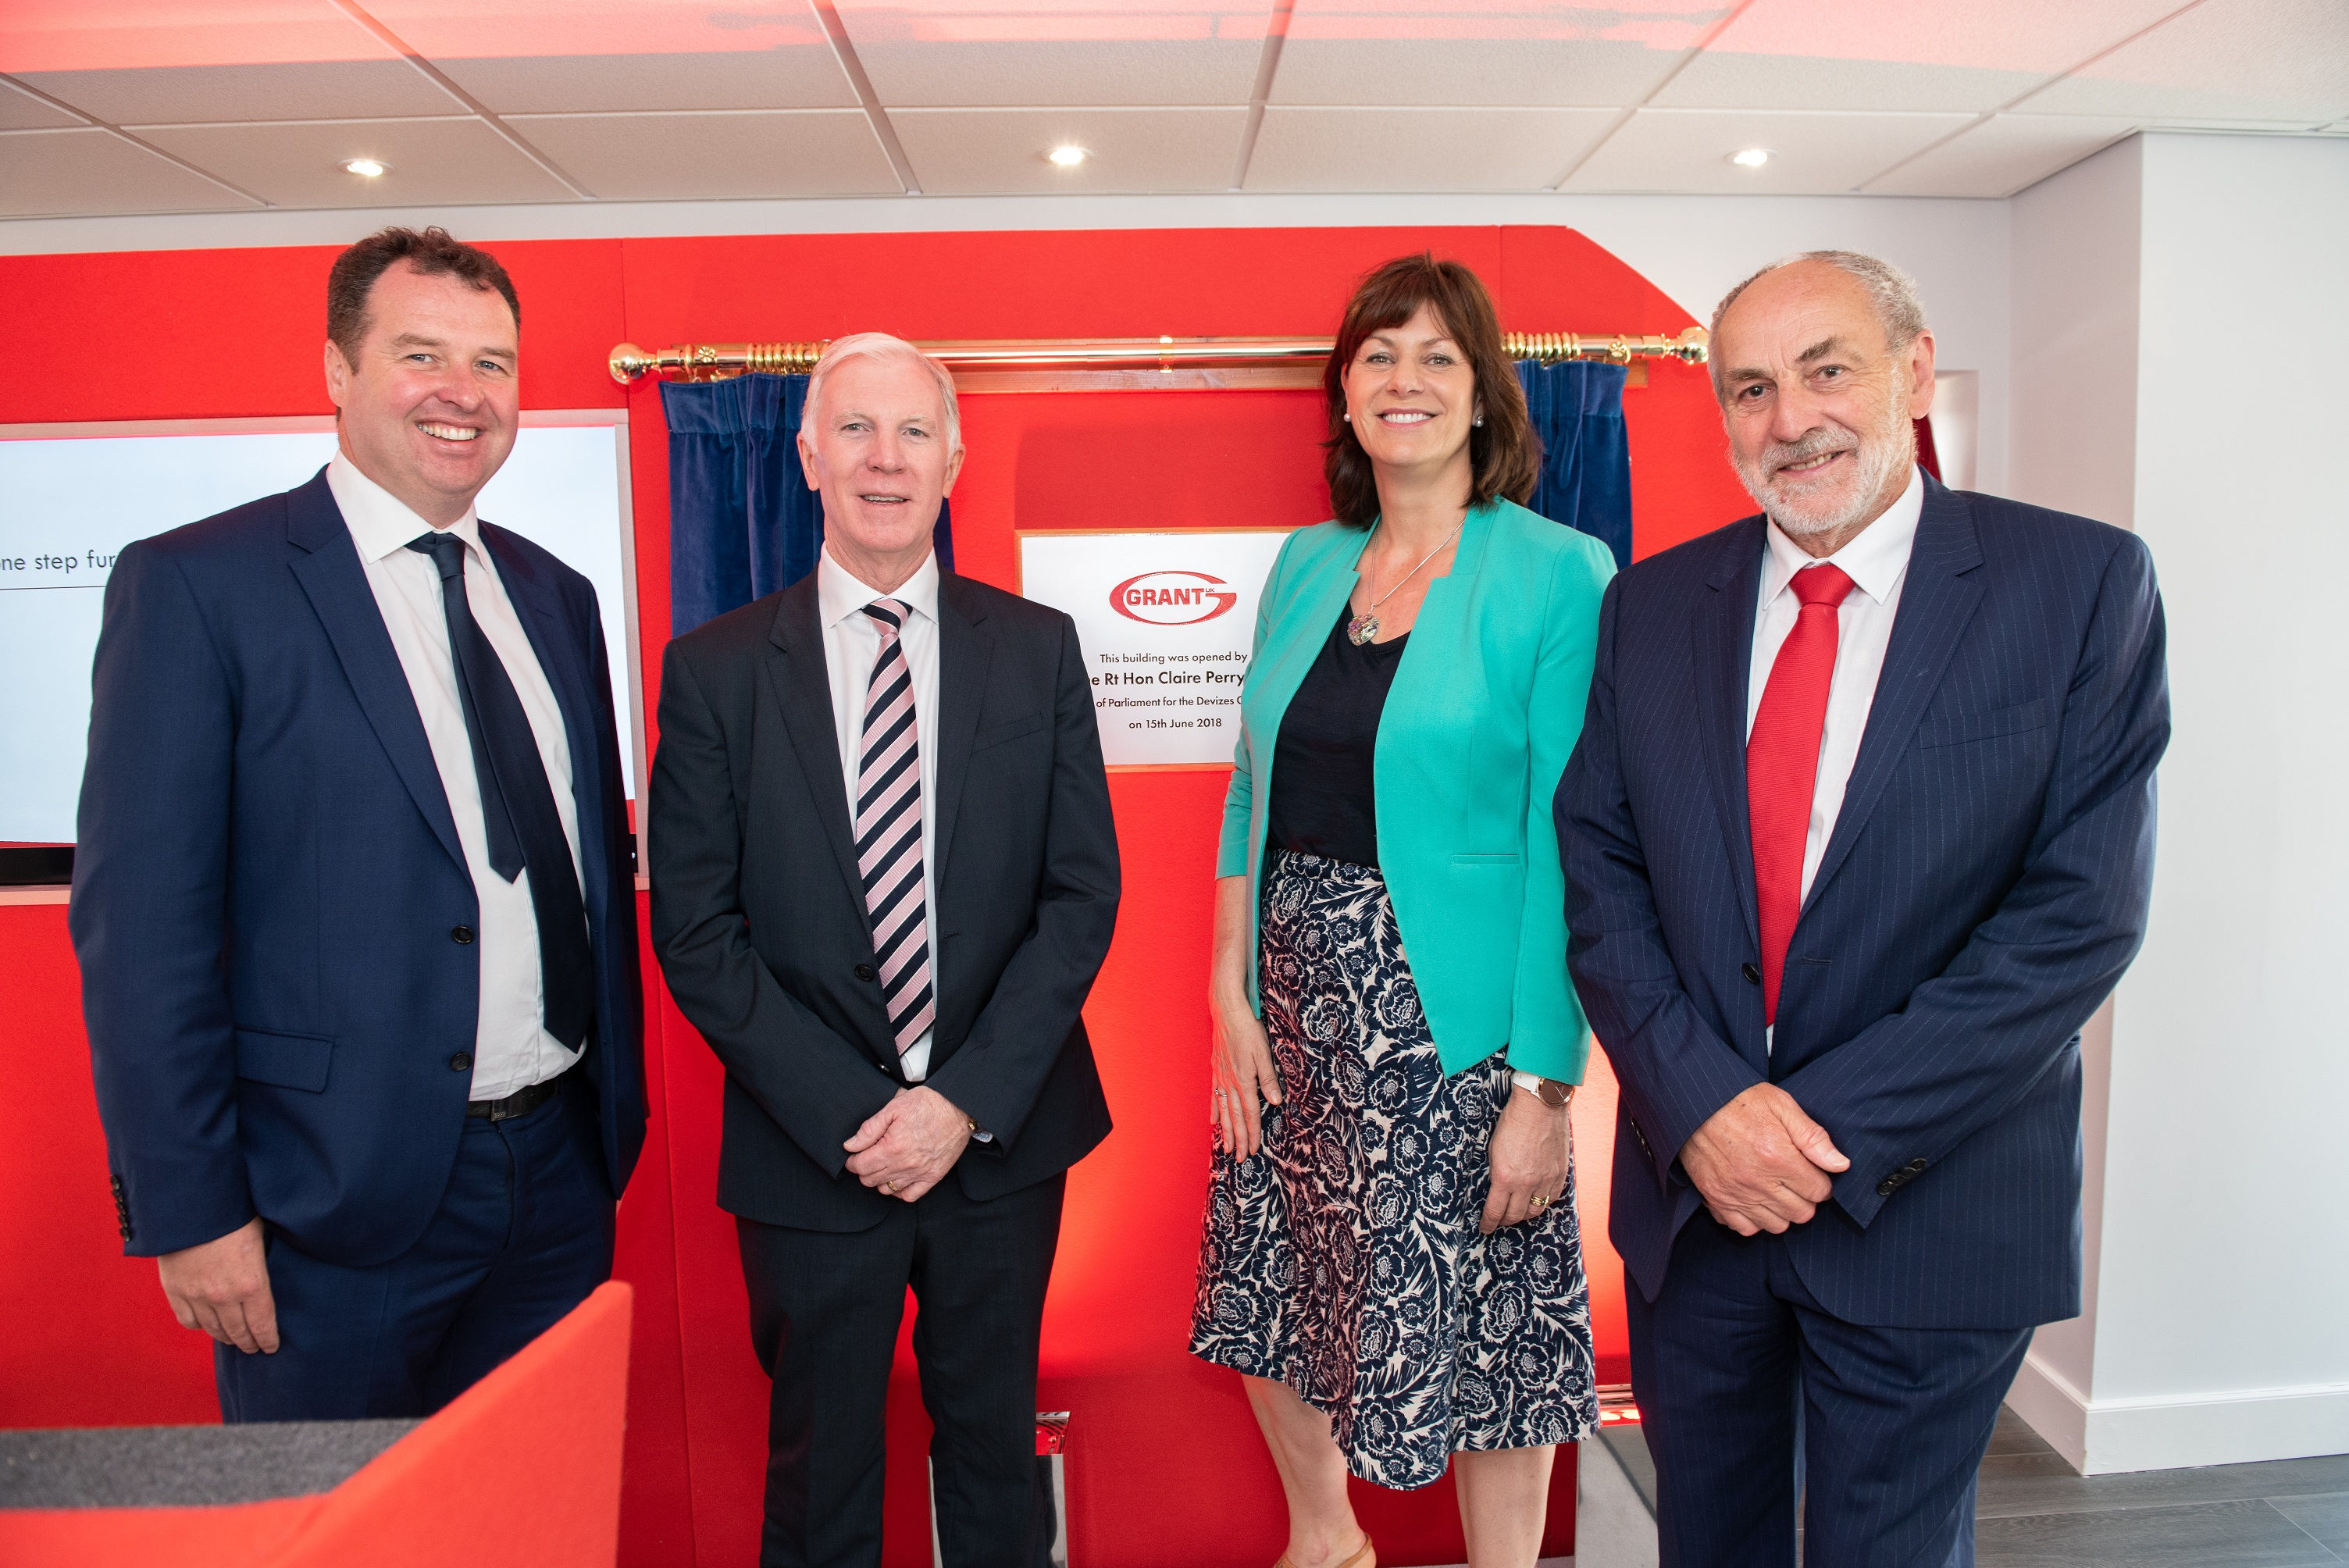 Claire Perry MP officially opens Grant UK's new Showroom and Meeting Suites